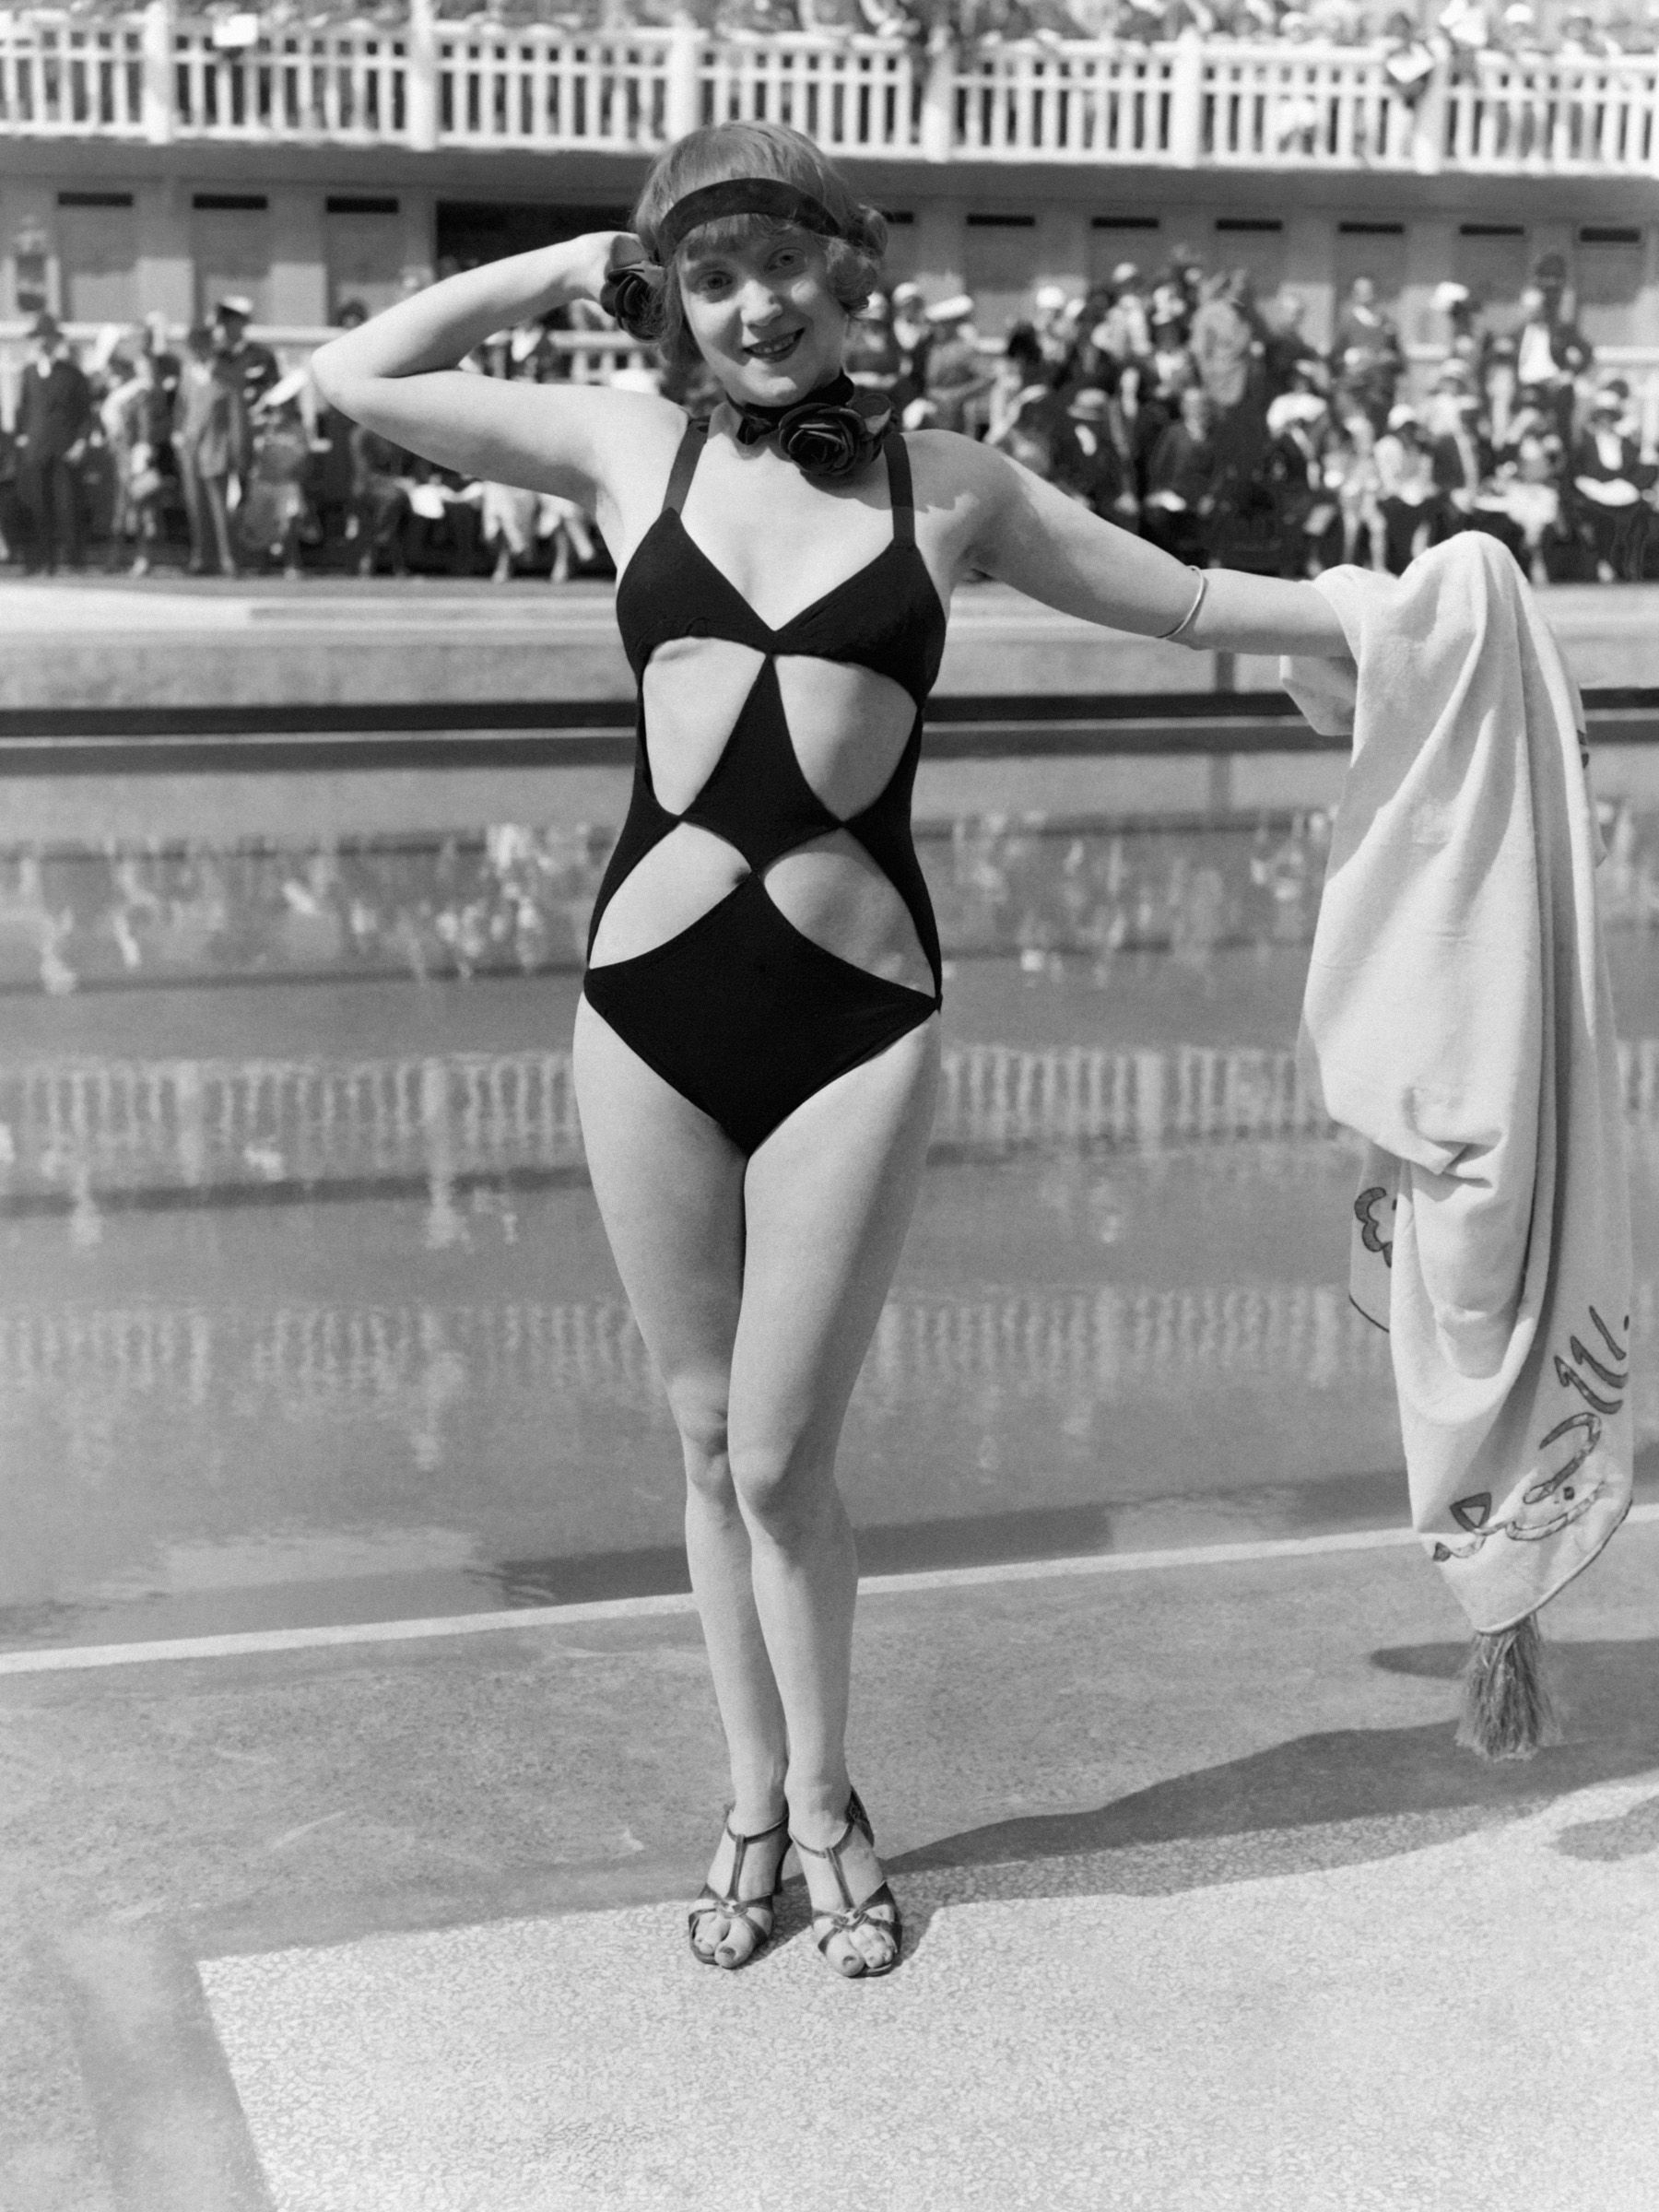 80 Vintage Babes in Bathing Suits to Celebrate That It's 80 Degrees  - ELLE.com